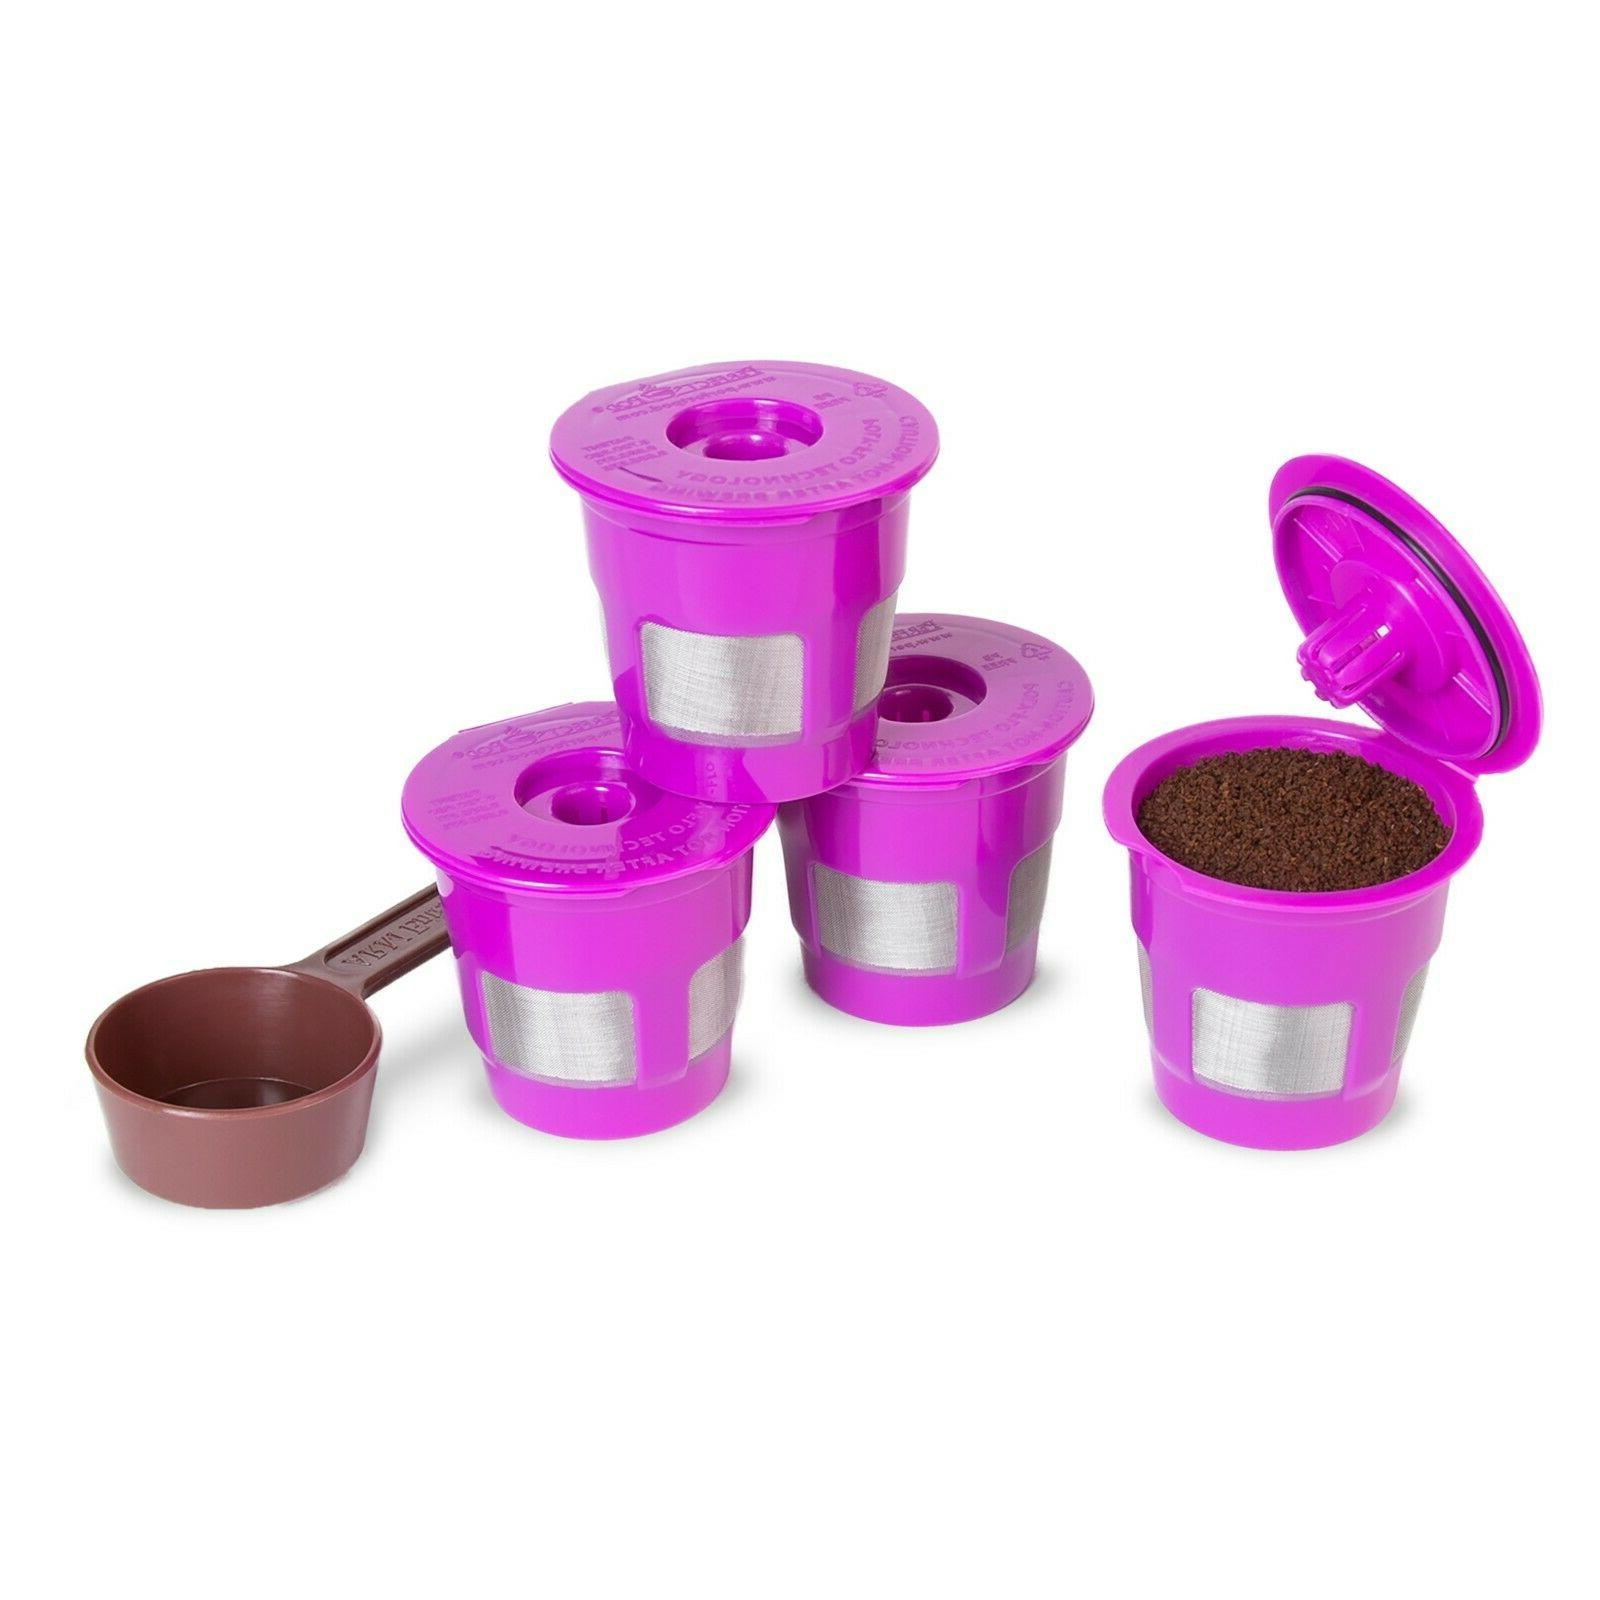 4 Reusable Filters + Coffee Scoop For Mr.Coffee Cuisinart Fl